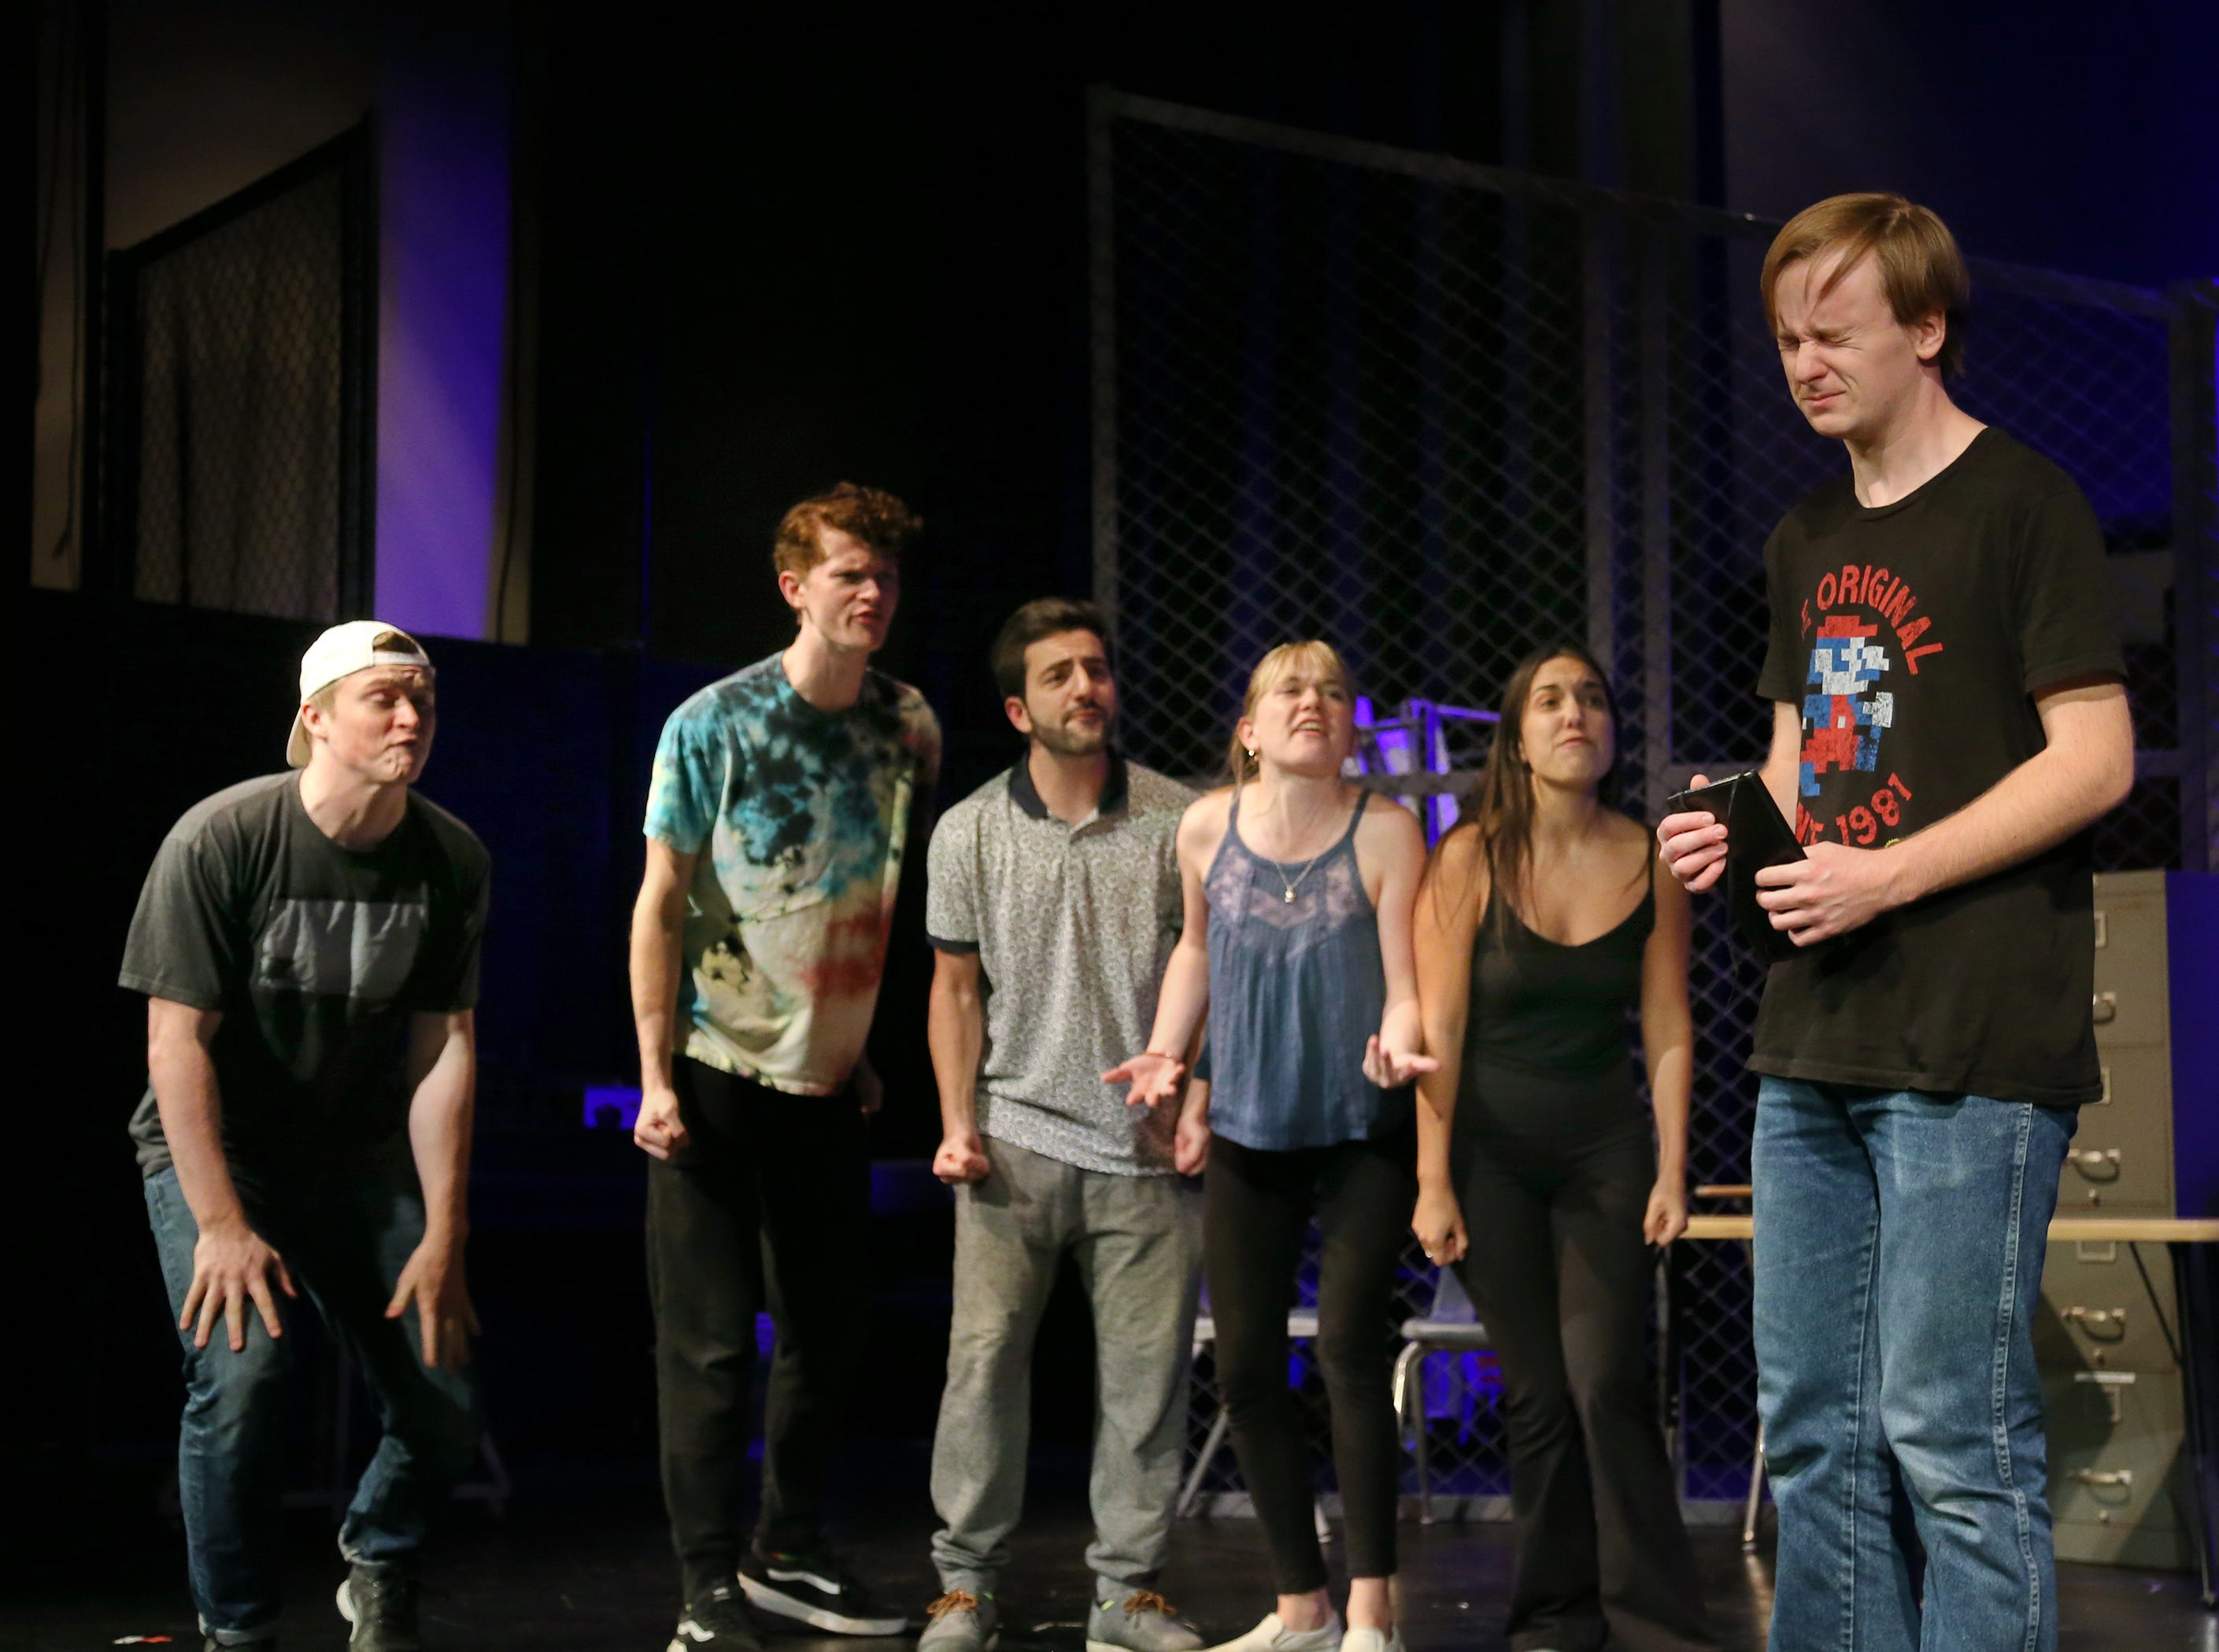 """California Lutheran University drama student Jacob White closes his eyes while getting taunted by Clayton Currie (from left), Jordan Irwin, Mahyar Mirazazadeh, Victoria Karr and Amber Marroqui in the school's production of """"Columbinus.""""  The play is based on the 1999 shooting at Columbine High School in Littleton, Colorado. White plays the role of shooter Dylan Klebold."""